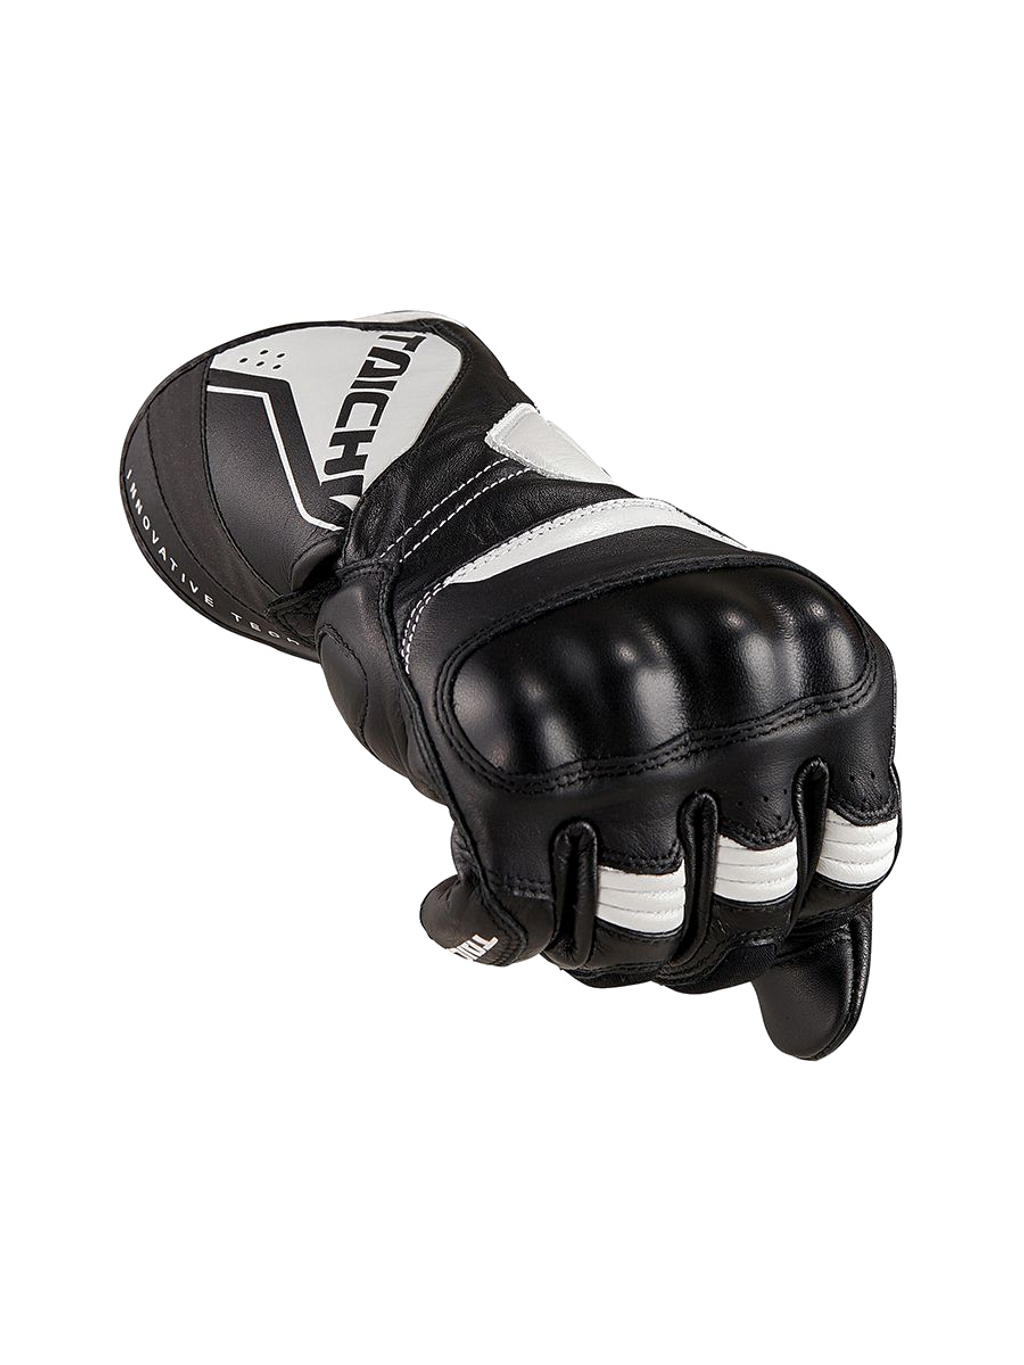 75 RS TAICHI RST453 CORSA LEATHER GLOVE black white (2).png